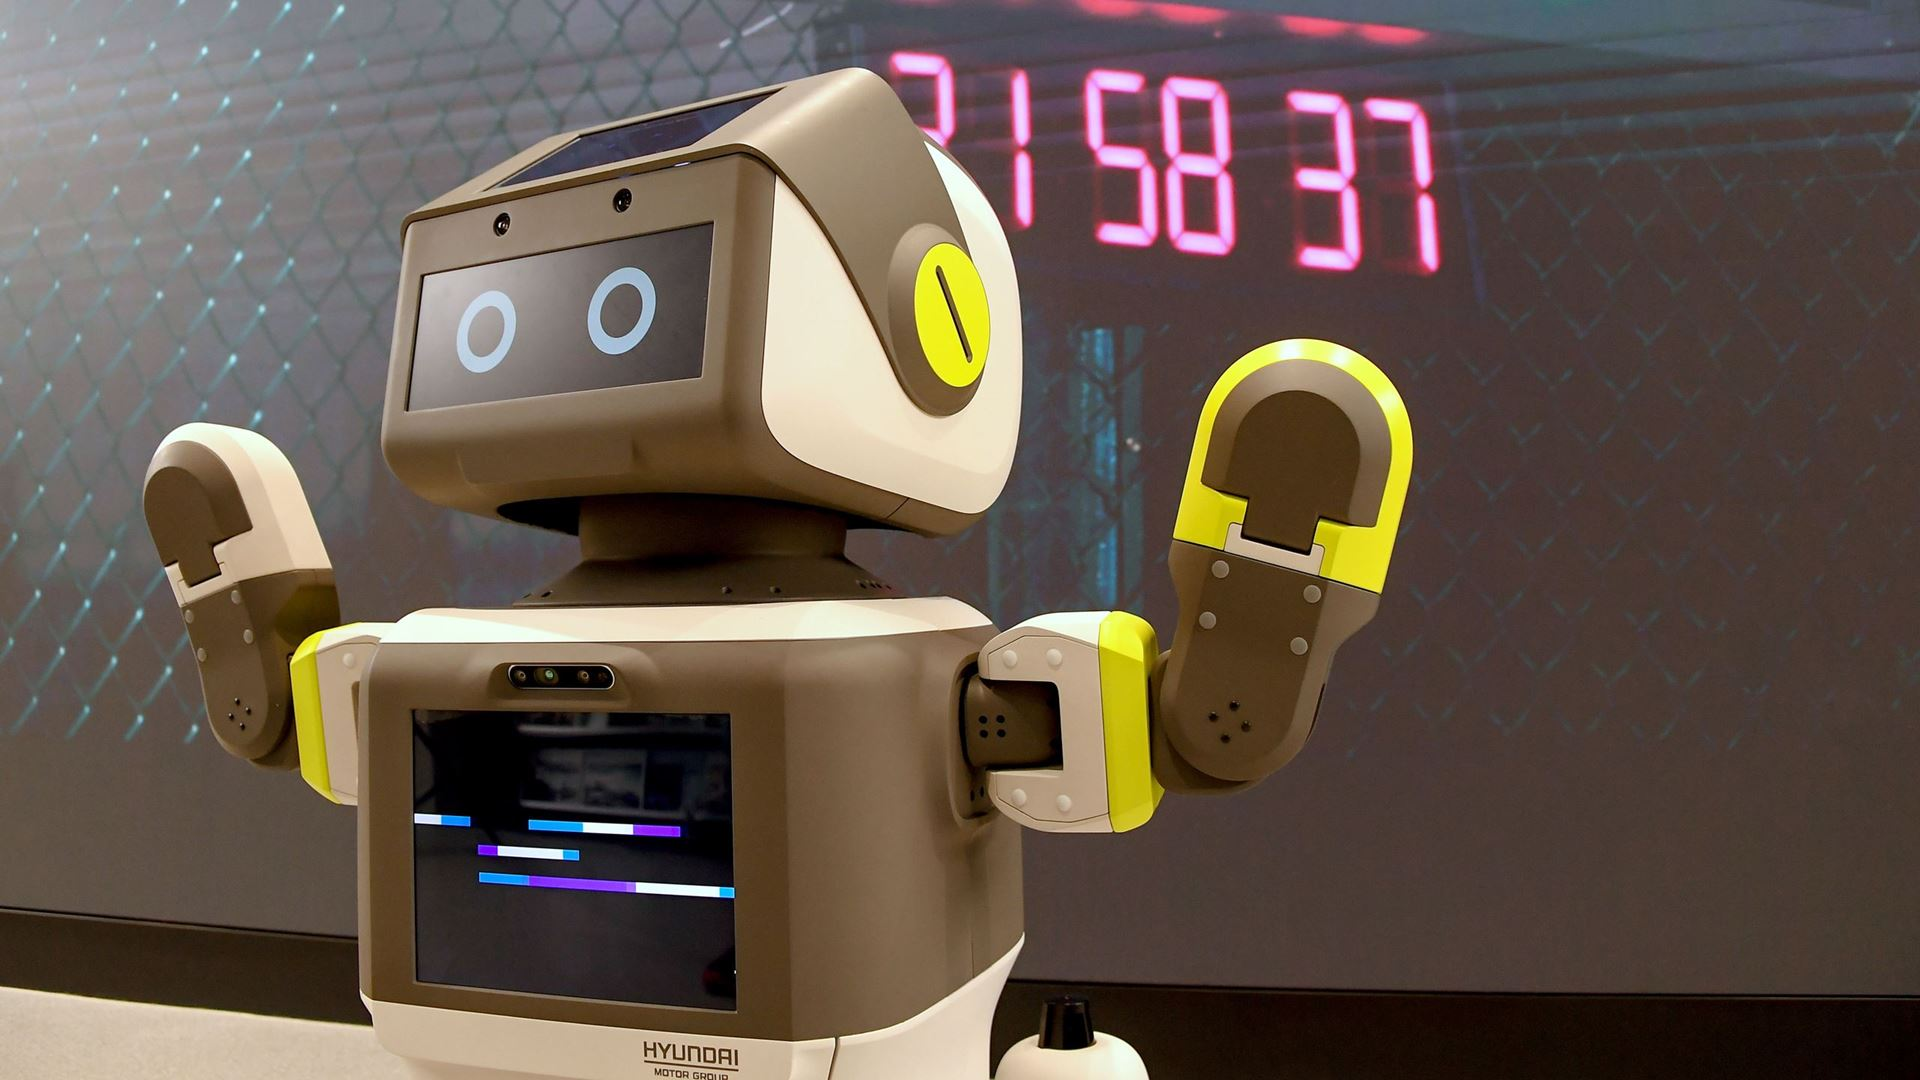 Hyundai Motor Group Introduces Advanced Humanoid Robot 'DAL-e' for Automated Customer Services - Image 5